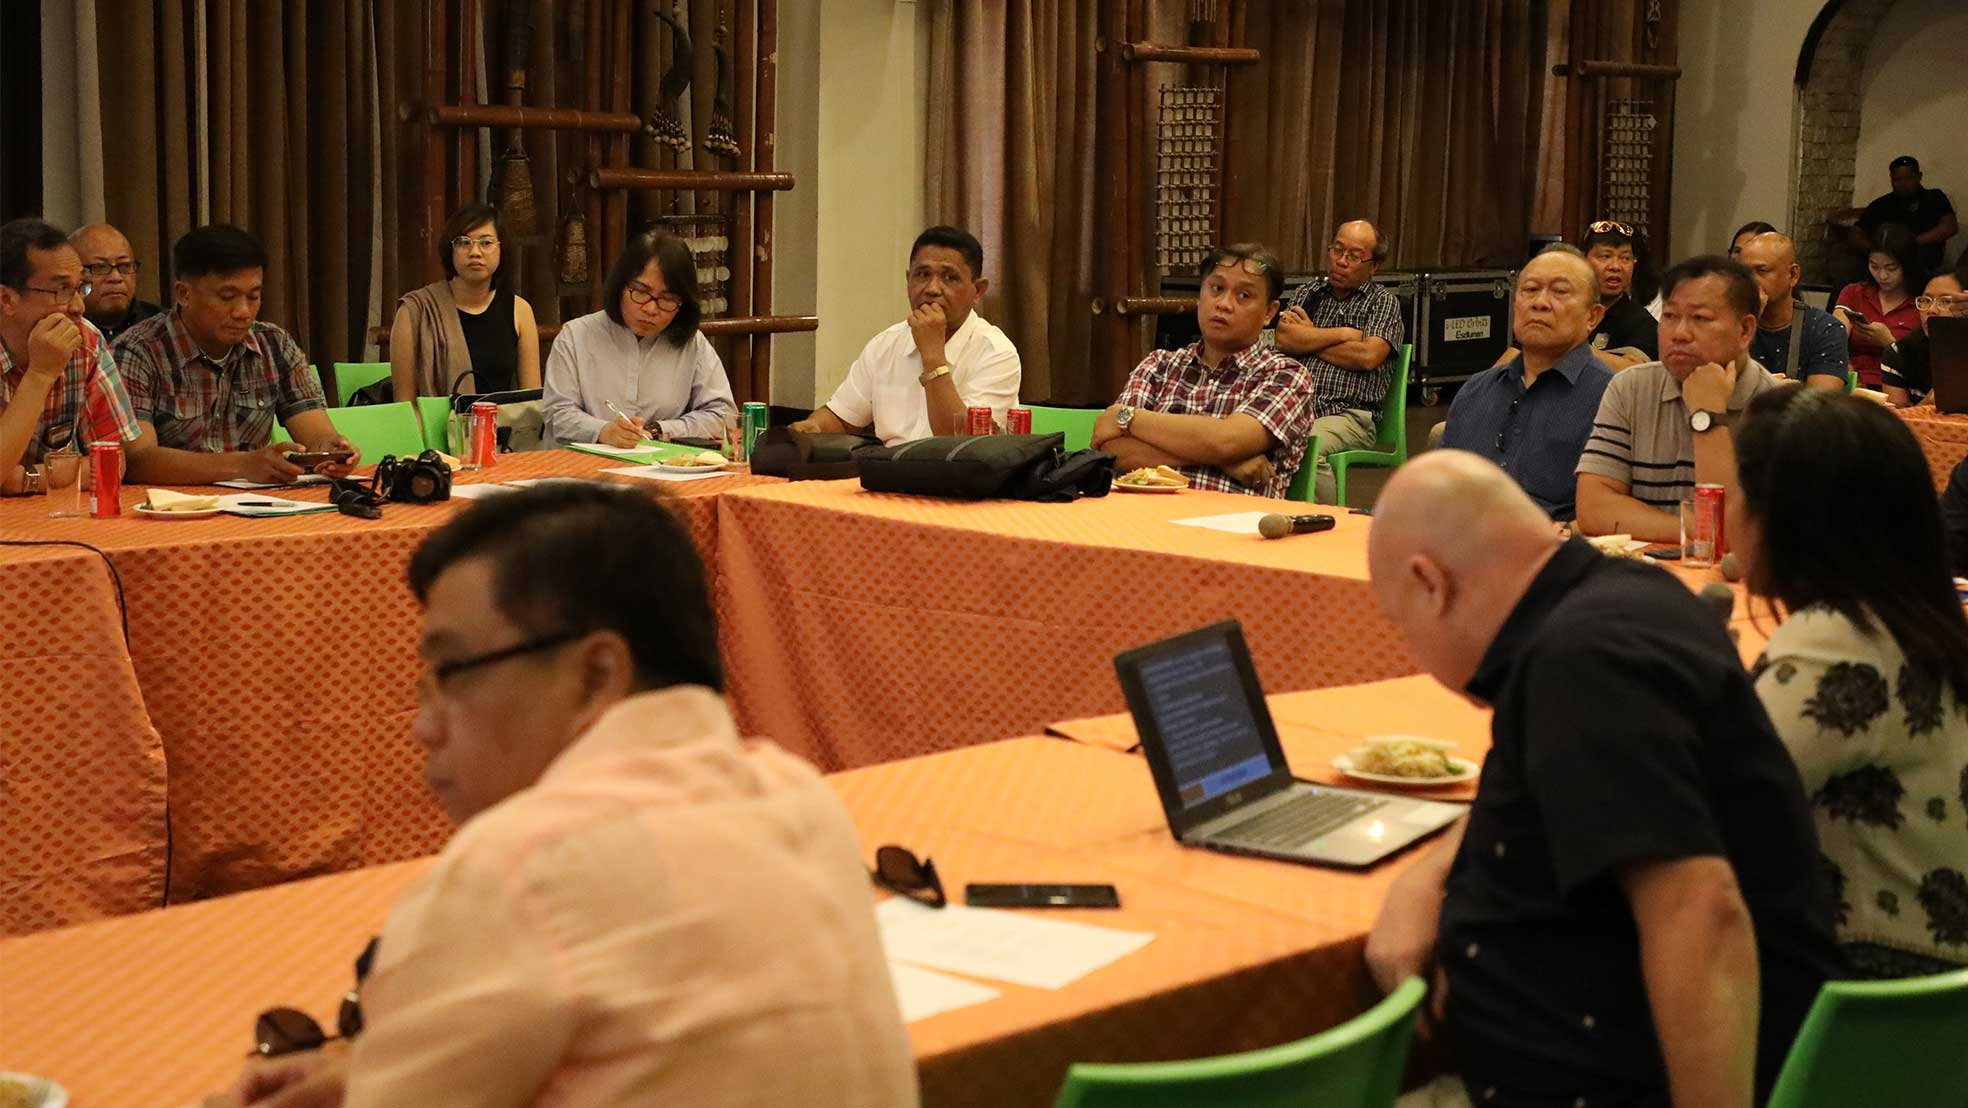 The Department of Environment and Natural Resources (DENR) and the Provincial Government of Palawan initiated the inter-agency meeting for the rehabilitation of El Nido and Coron, both premier tourism destinations in Palawan. Present during the activity were DENR Assistant Regional Director Vicente Tuddao, Governor Jose Chavez Alvarez, El Nido Mayor Nieves Rosento, among other officials. Photo from http://www.palawan.gov.ph/